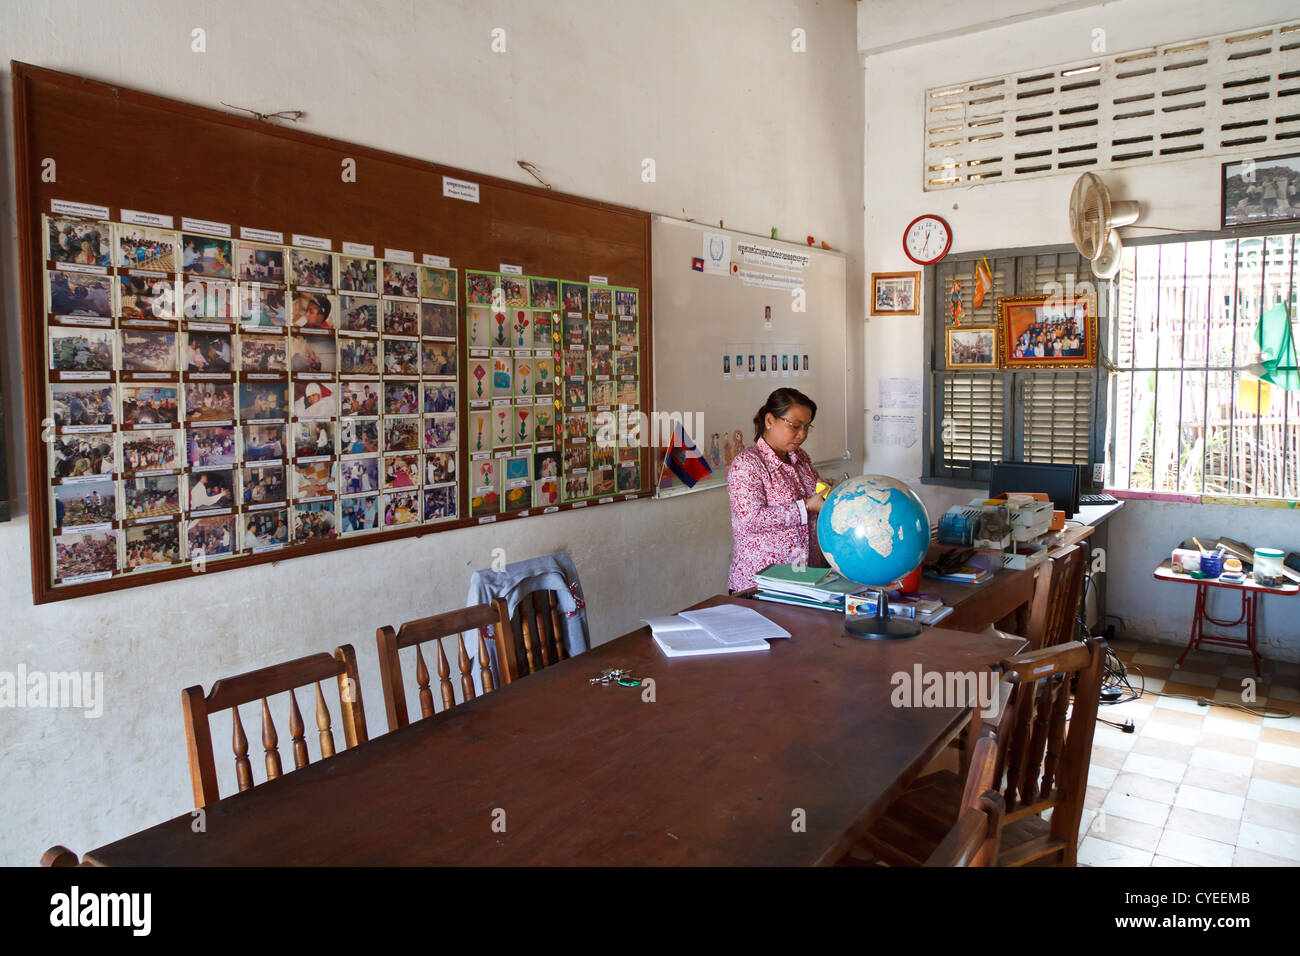 Classroom Of A School In The District Stung Meanchey In Phnom Penh Stock Photo Alamy